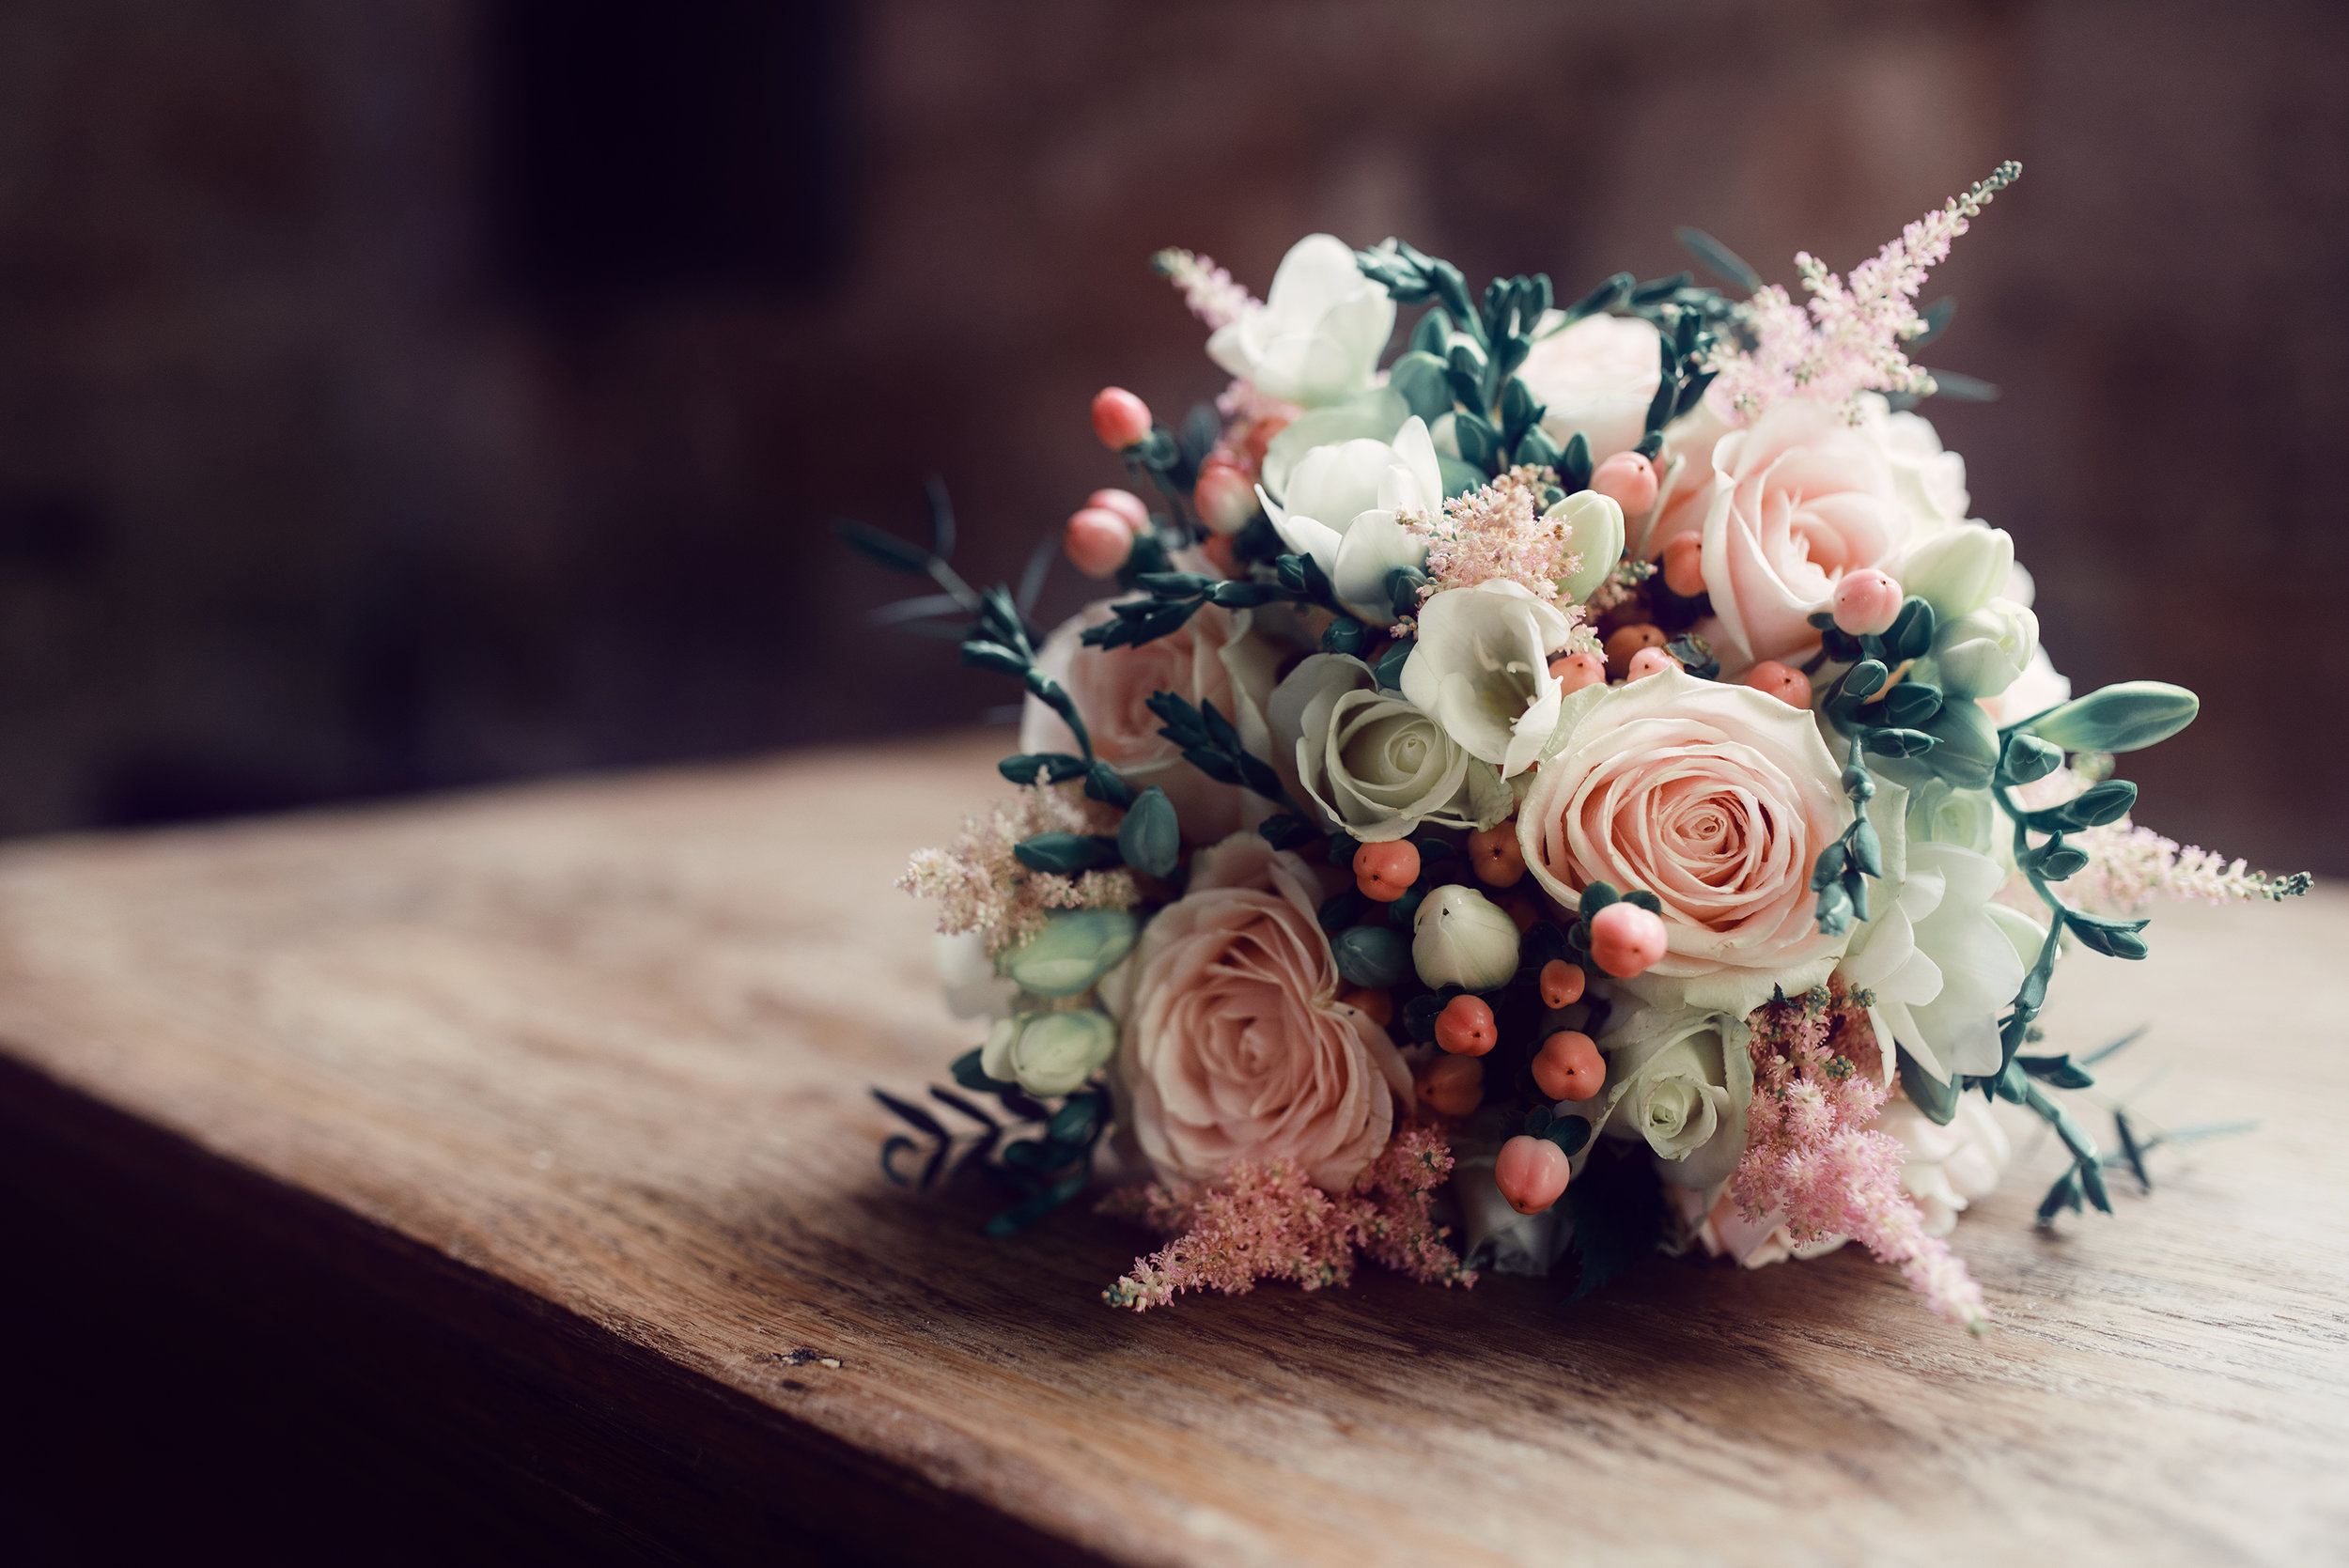 The brides bouquet during the signing of the register